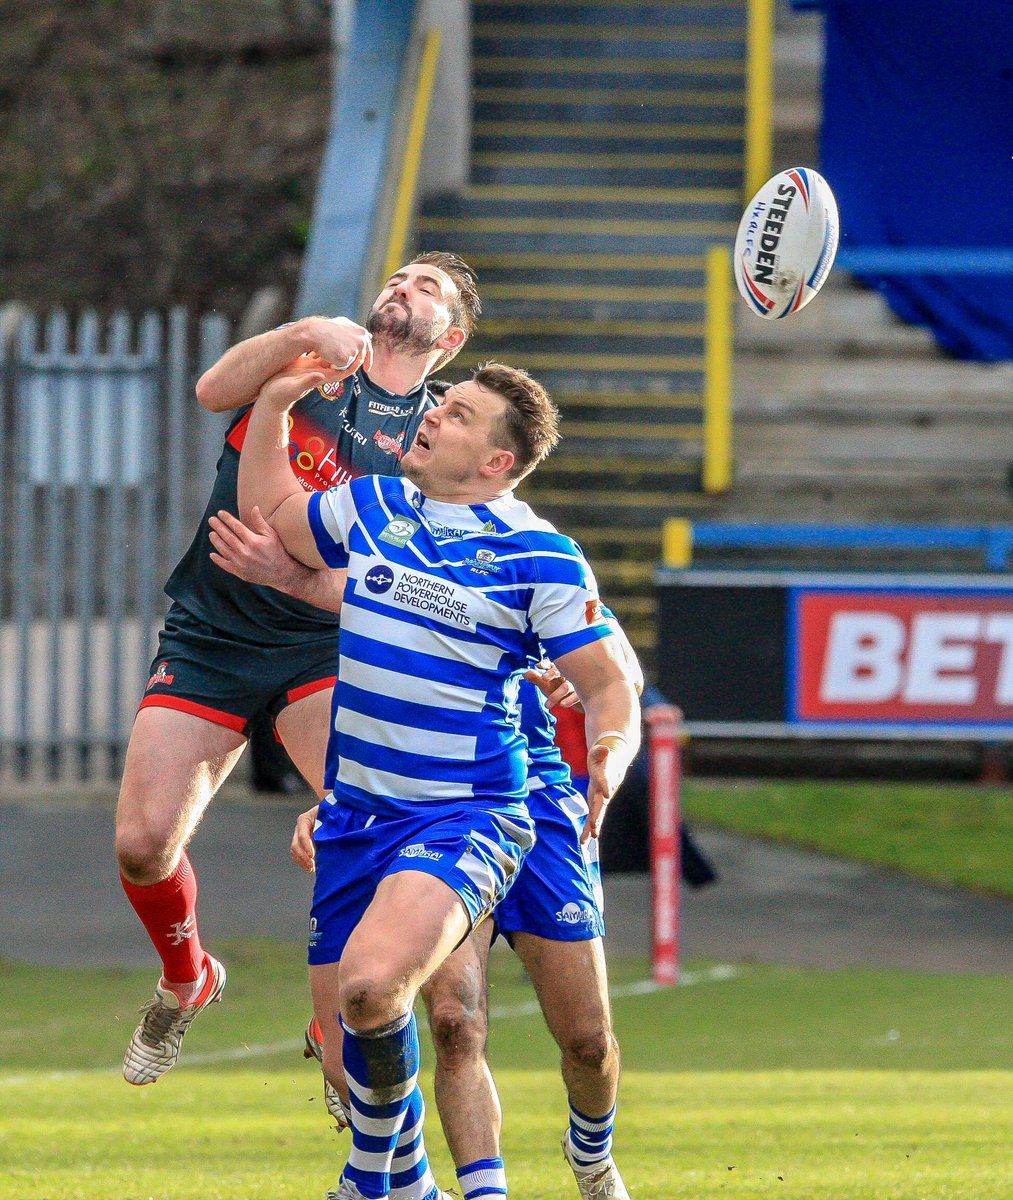 test Twitter Media - Well done to Samurai Family member @Halifax_RLFC  on their victory at the weekend 💪🏈🏆 #halifax #rugbyleague #rugby #SamuraiFamily https://t.co/PhMpzvjkRZ